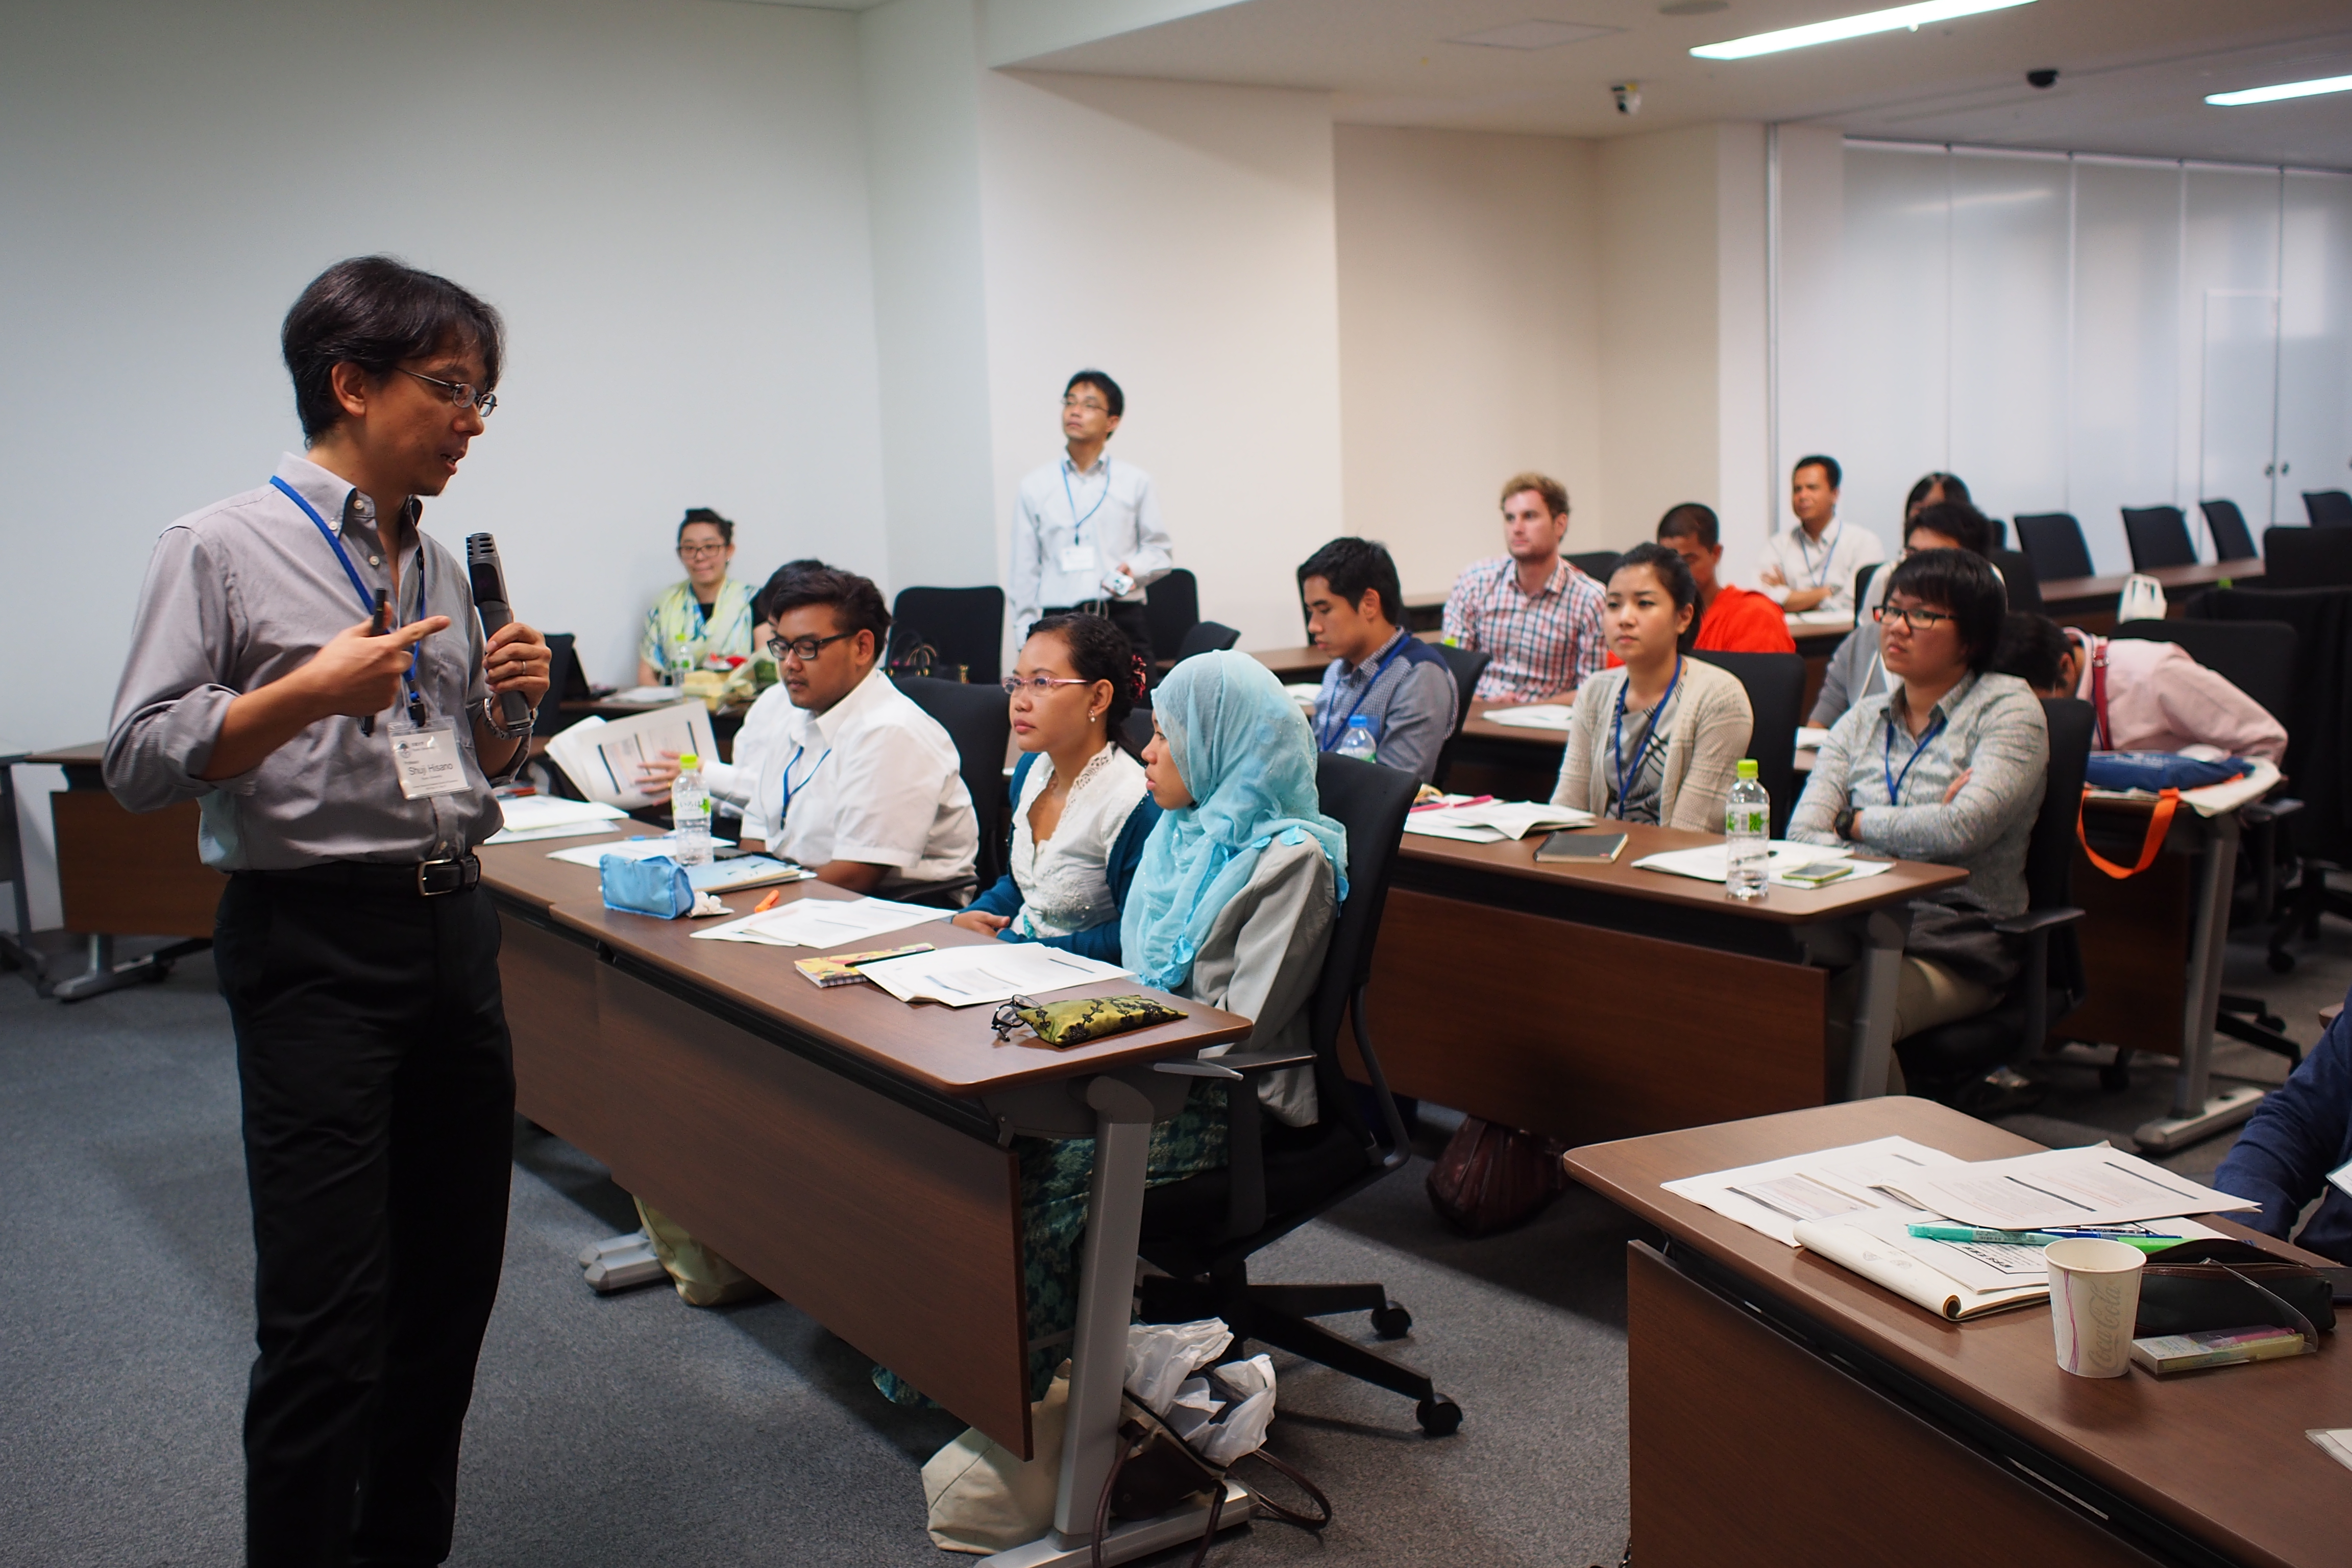 Lecture by Prof. Hisano